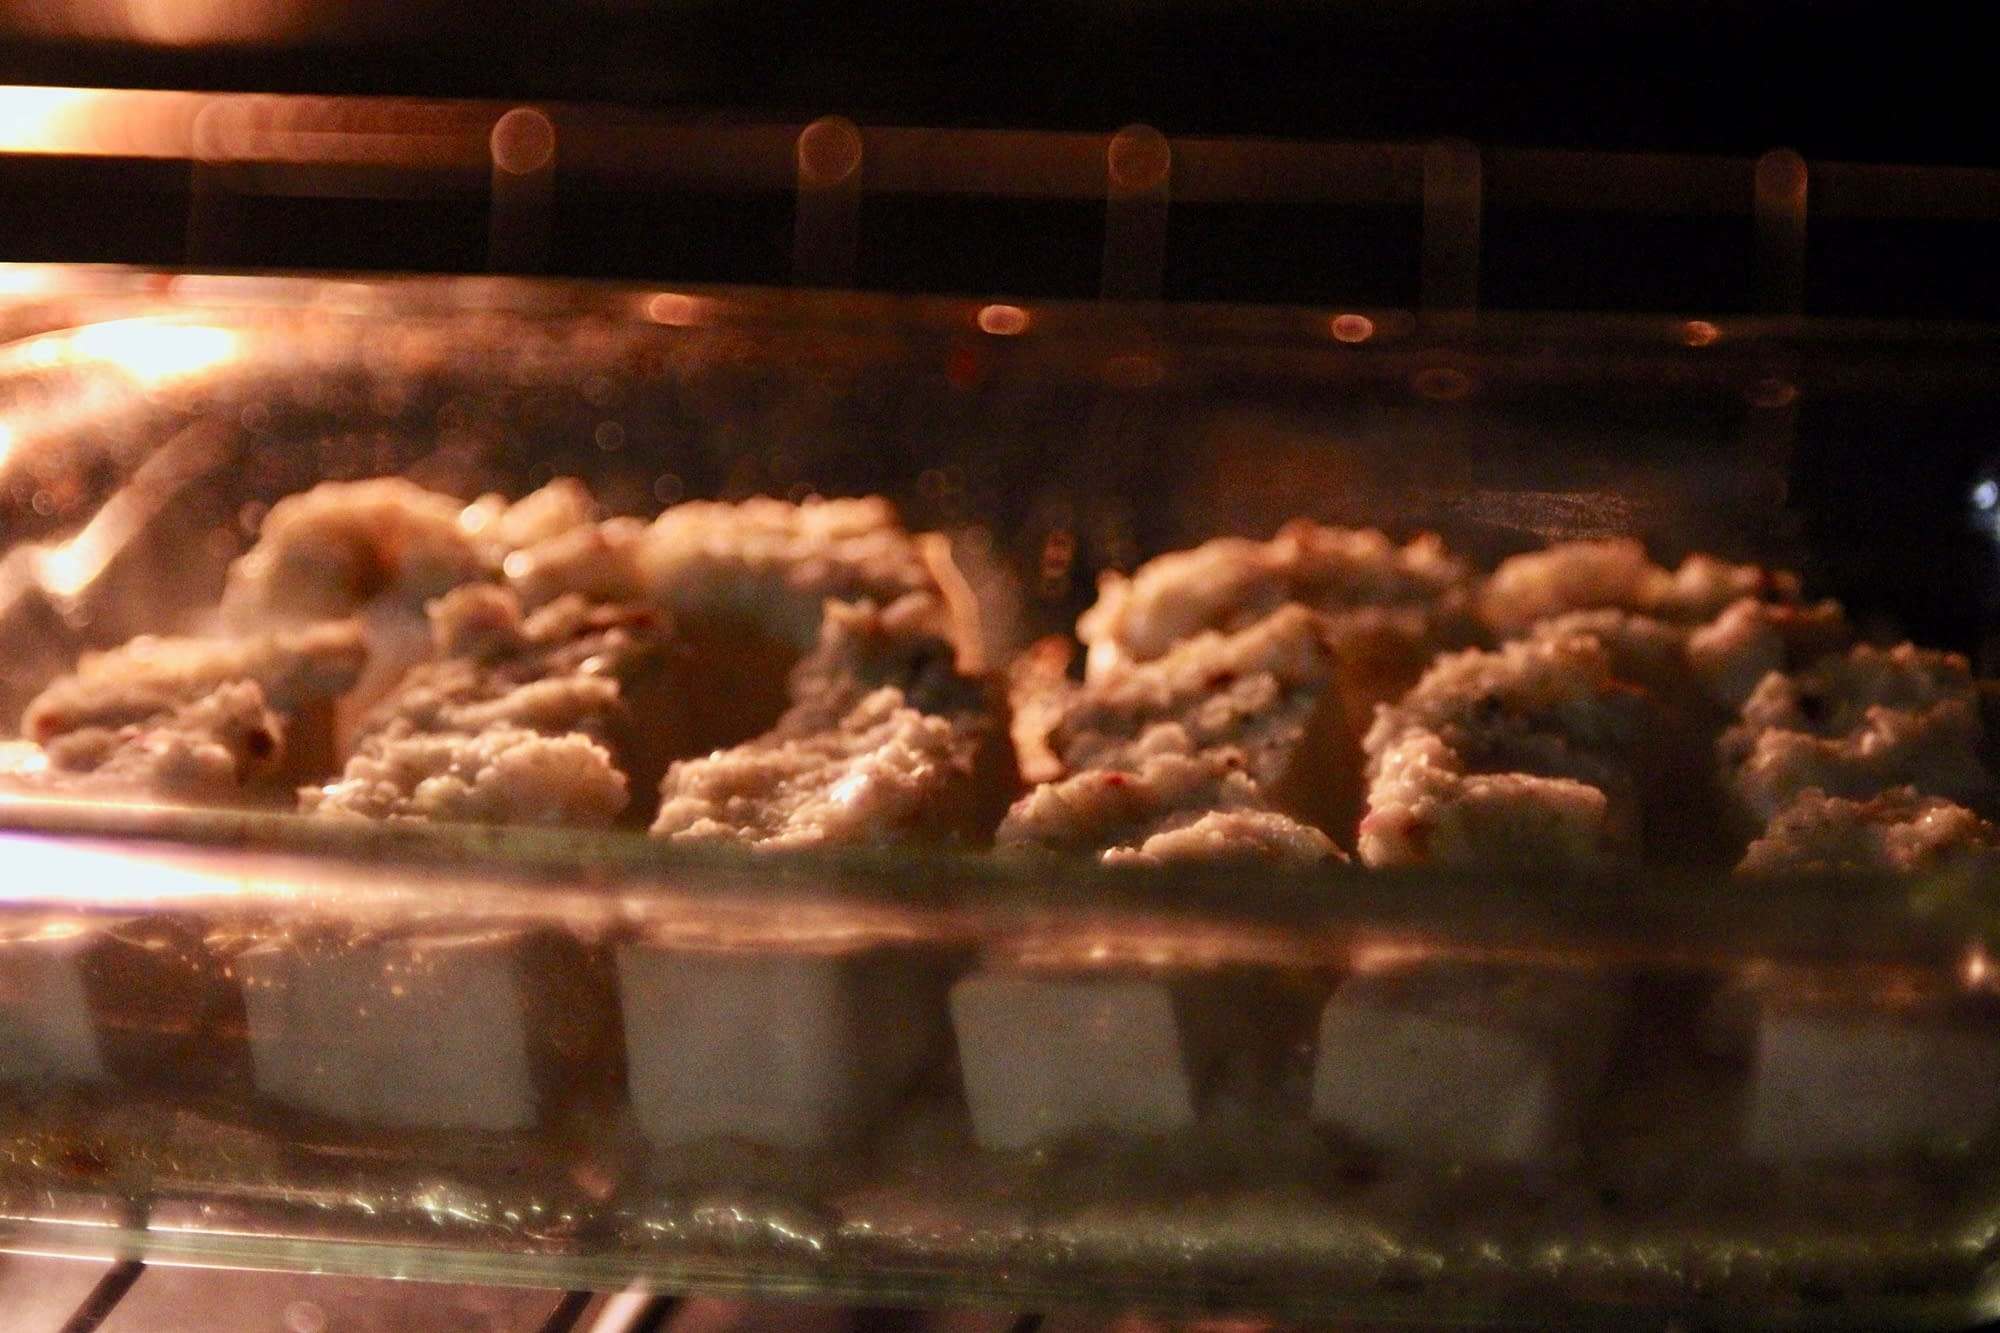 Tofu baking in the oven.